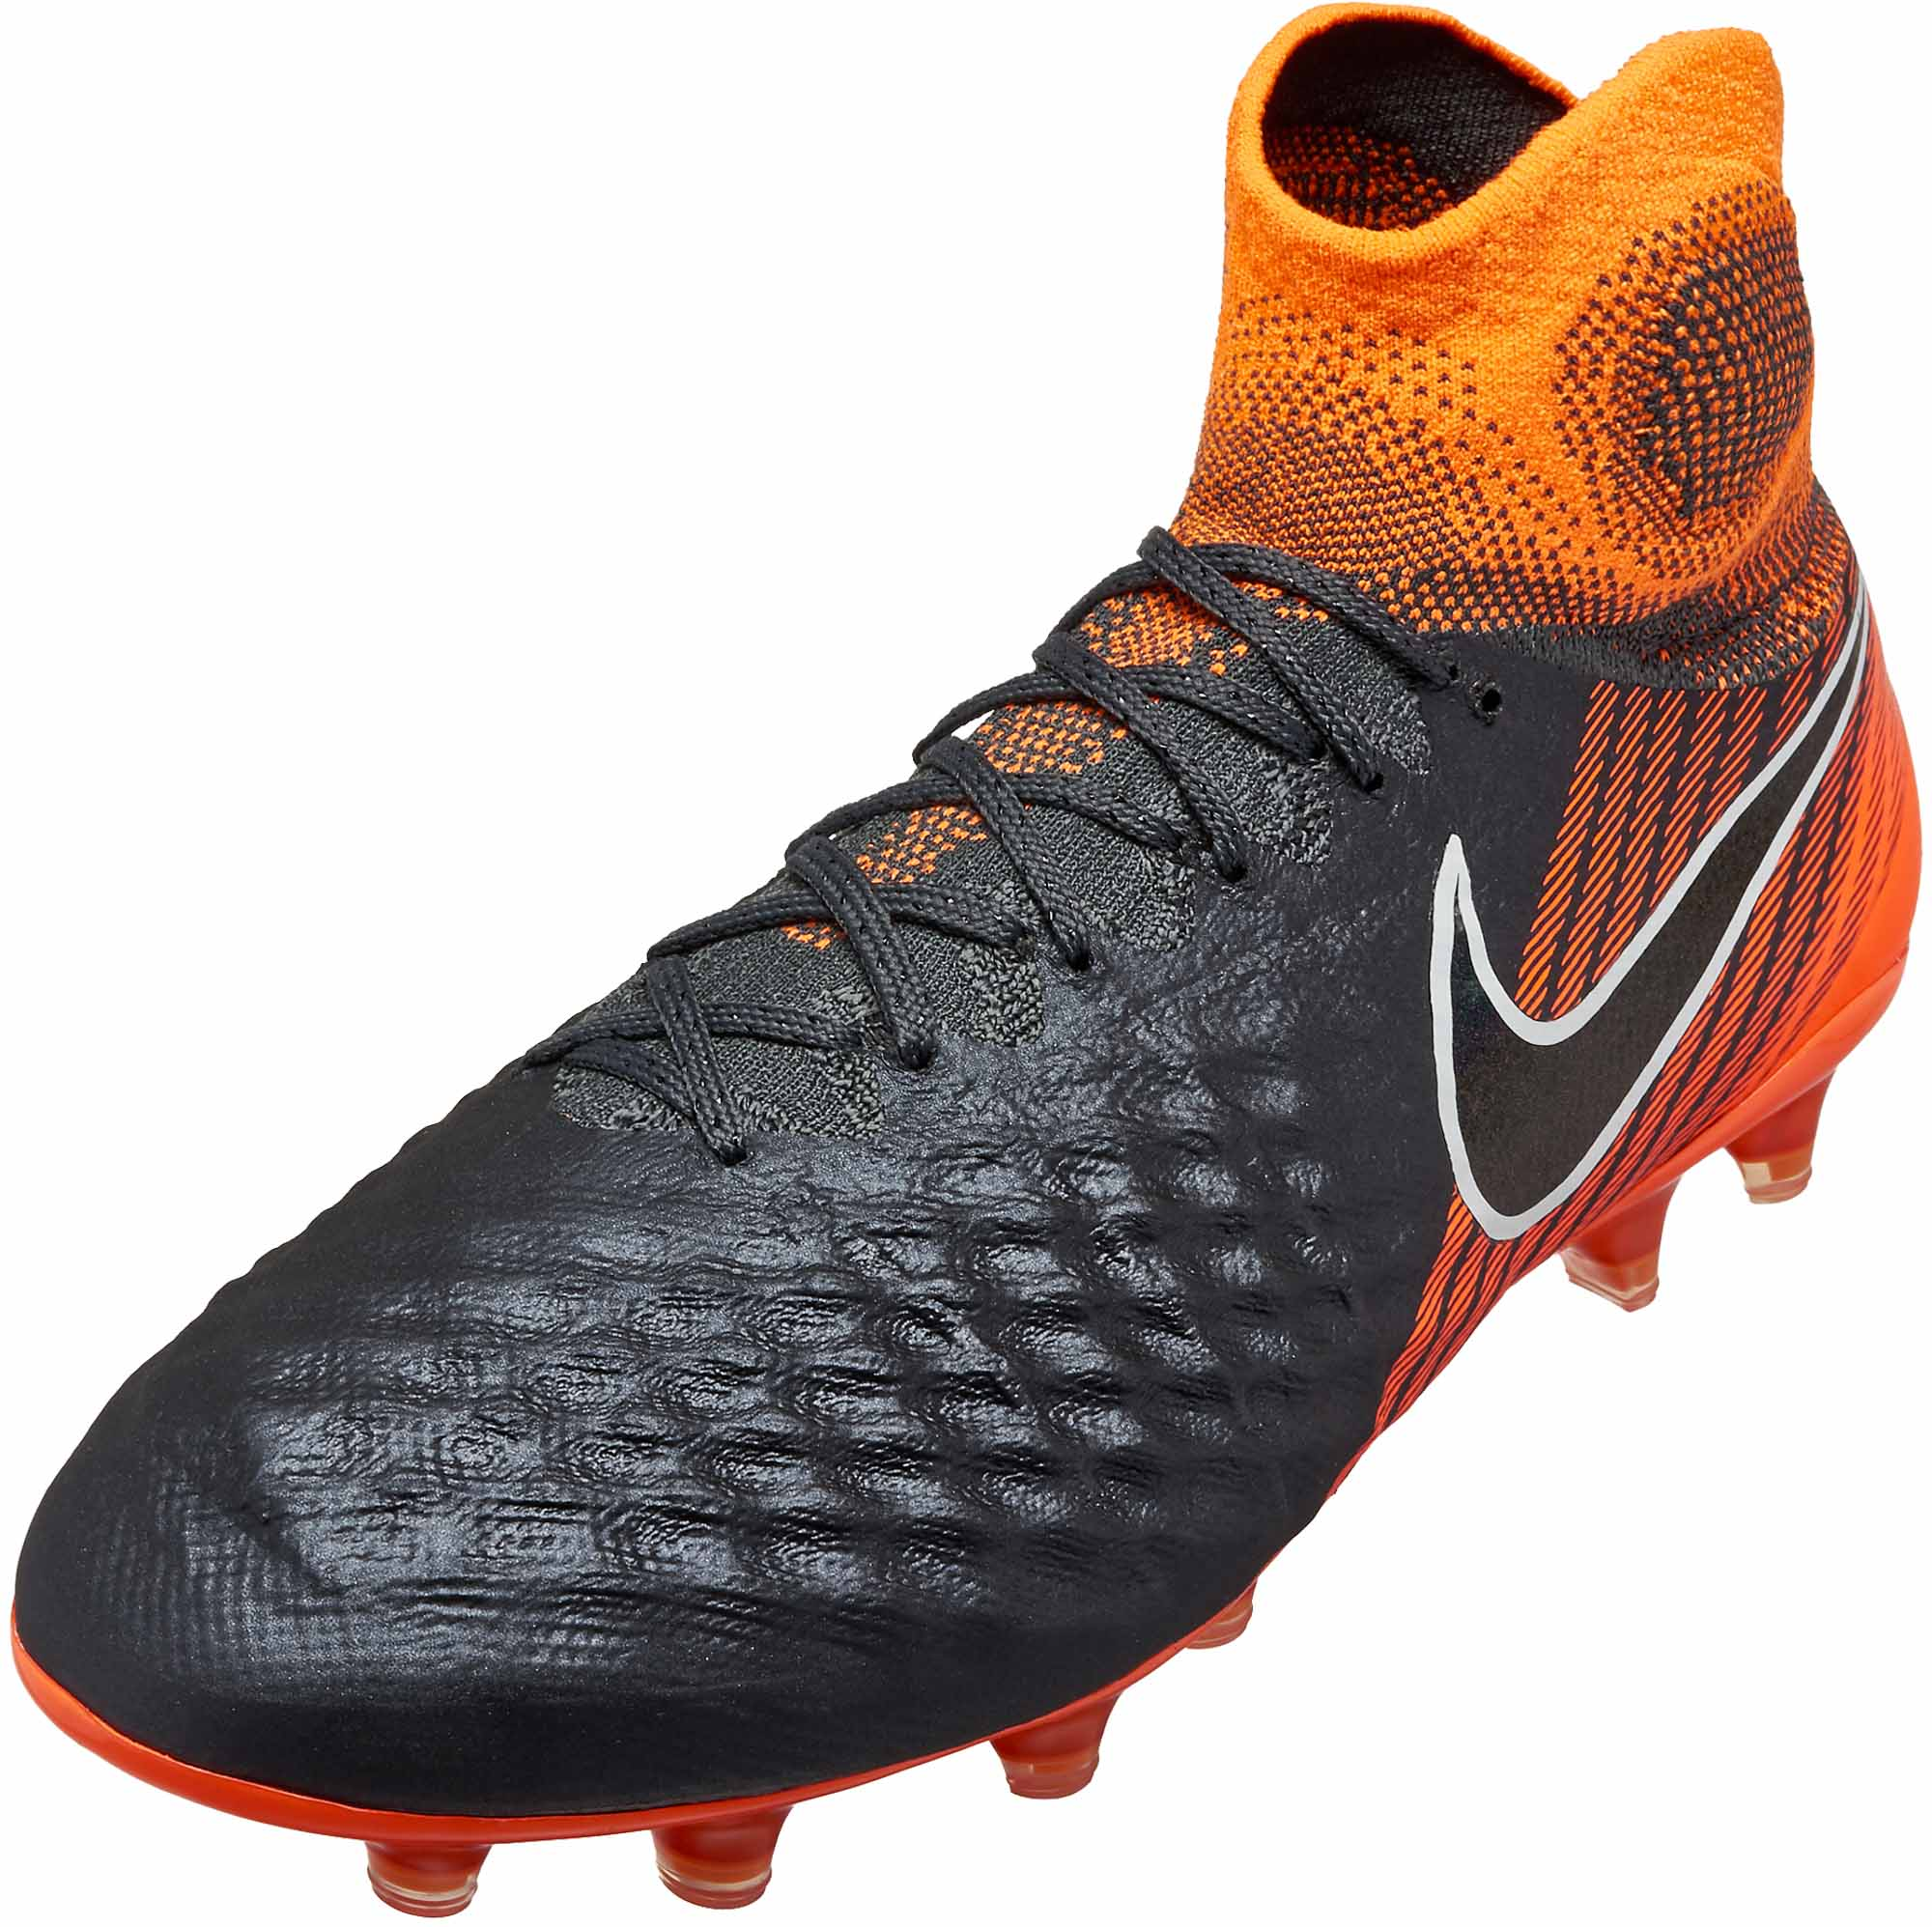 0da637b0da2d Nike Magista Obra 2 Elite DF FG – Dark Grey Total Orange